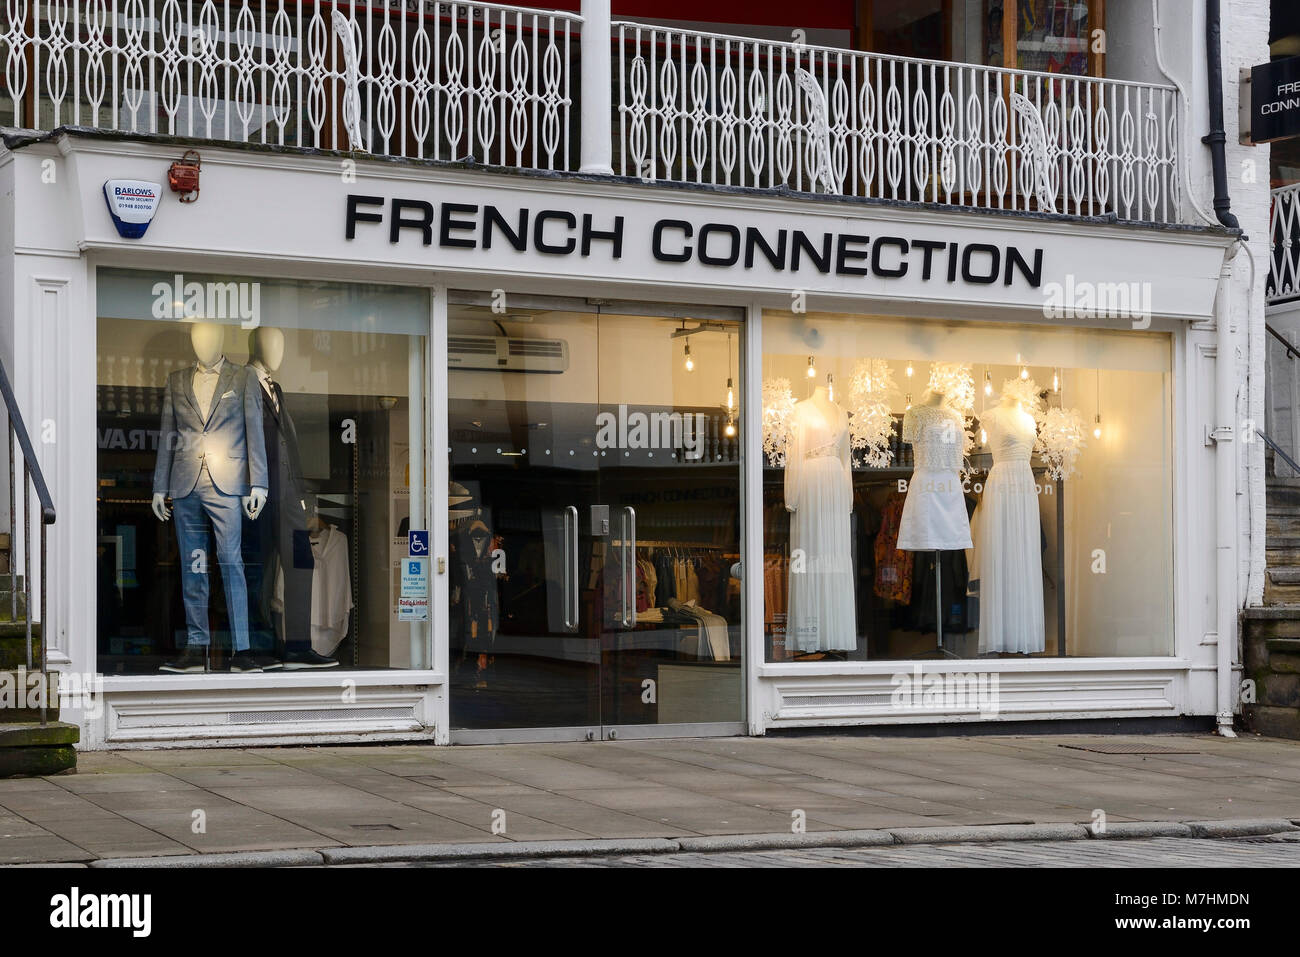 French Connection shop front in Chester city centre UK - Stock Image